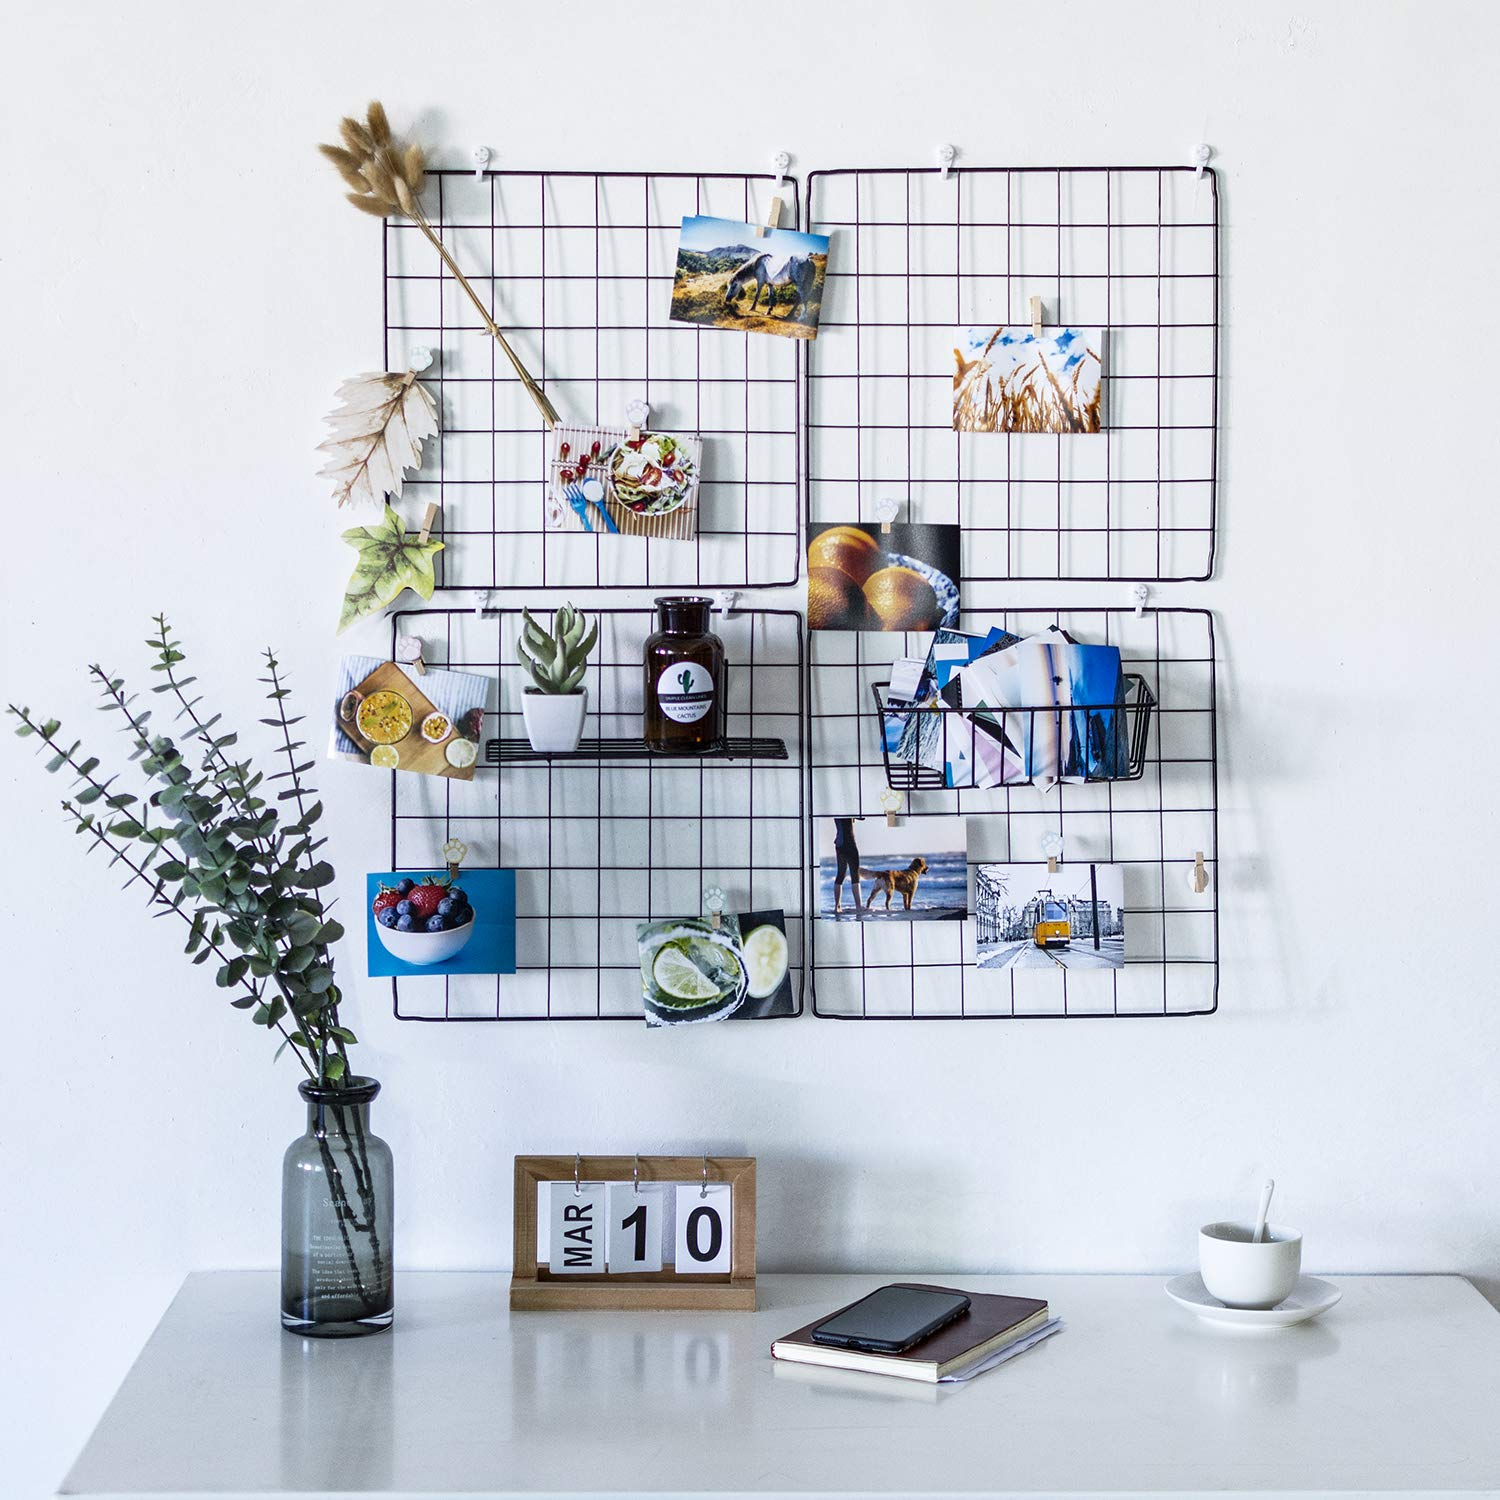 devesanter DS Grid Photo Wall Wire Grid Panel Picture Display Iron Decorative Rack Photograph Wall Ins Display Photo Wall 14x14 Inches Set of 4 (Black) by devesanter